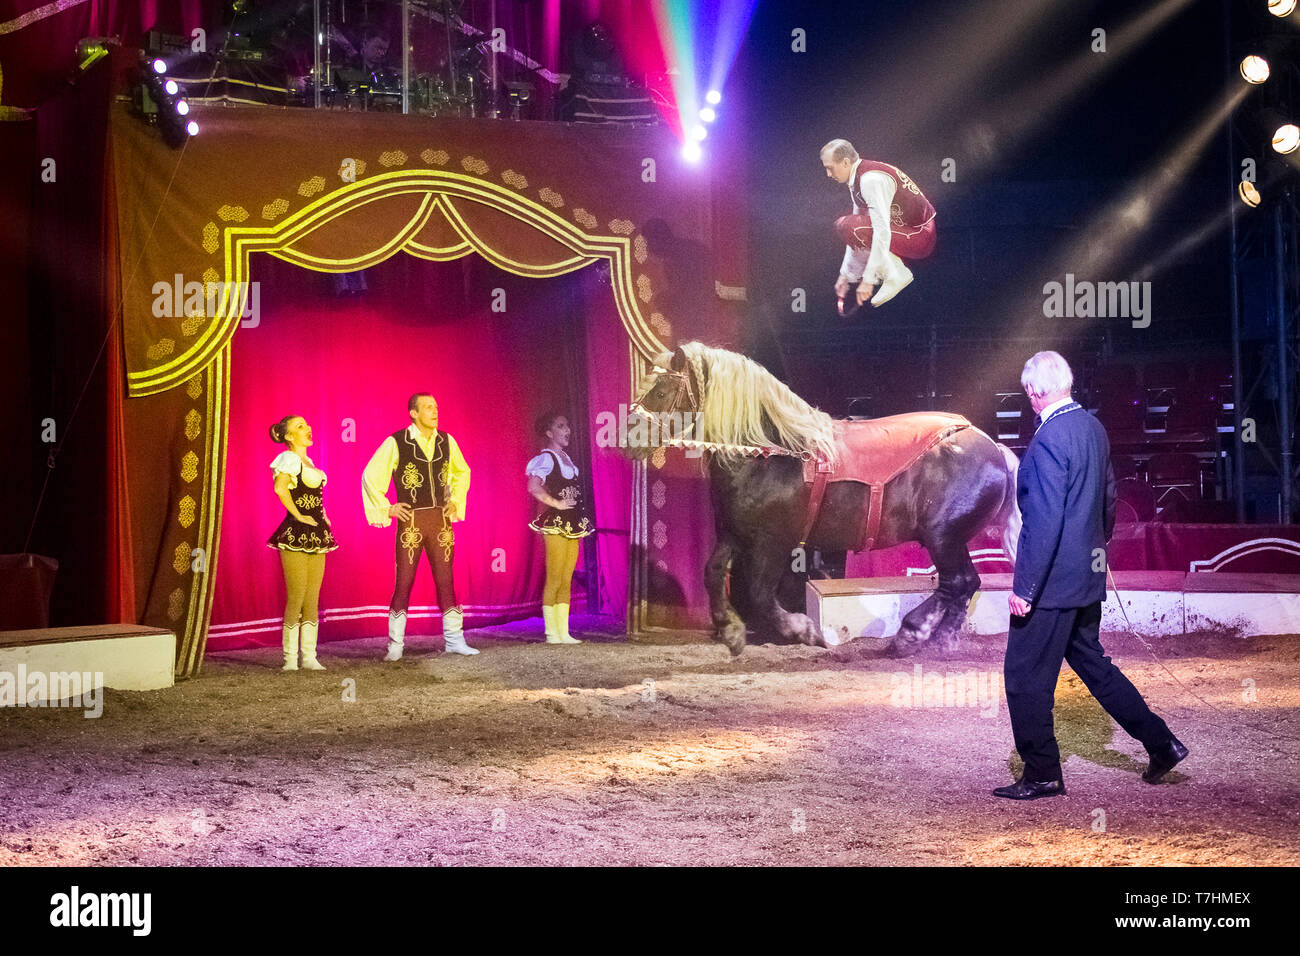 Performer jumping on the back of a Russian Heavy Draft Horse during an show at the circus Louis Knie junior, Austria - Stock Image